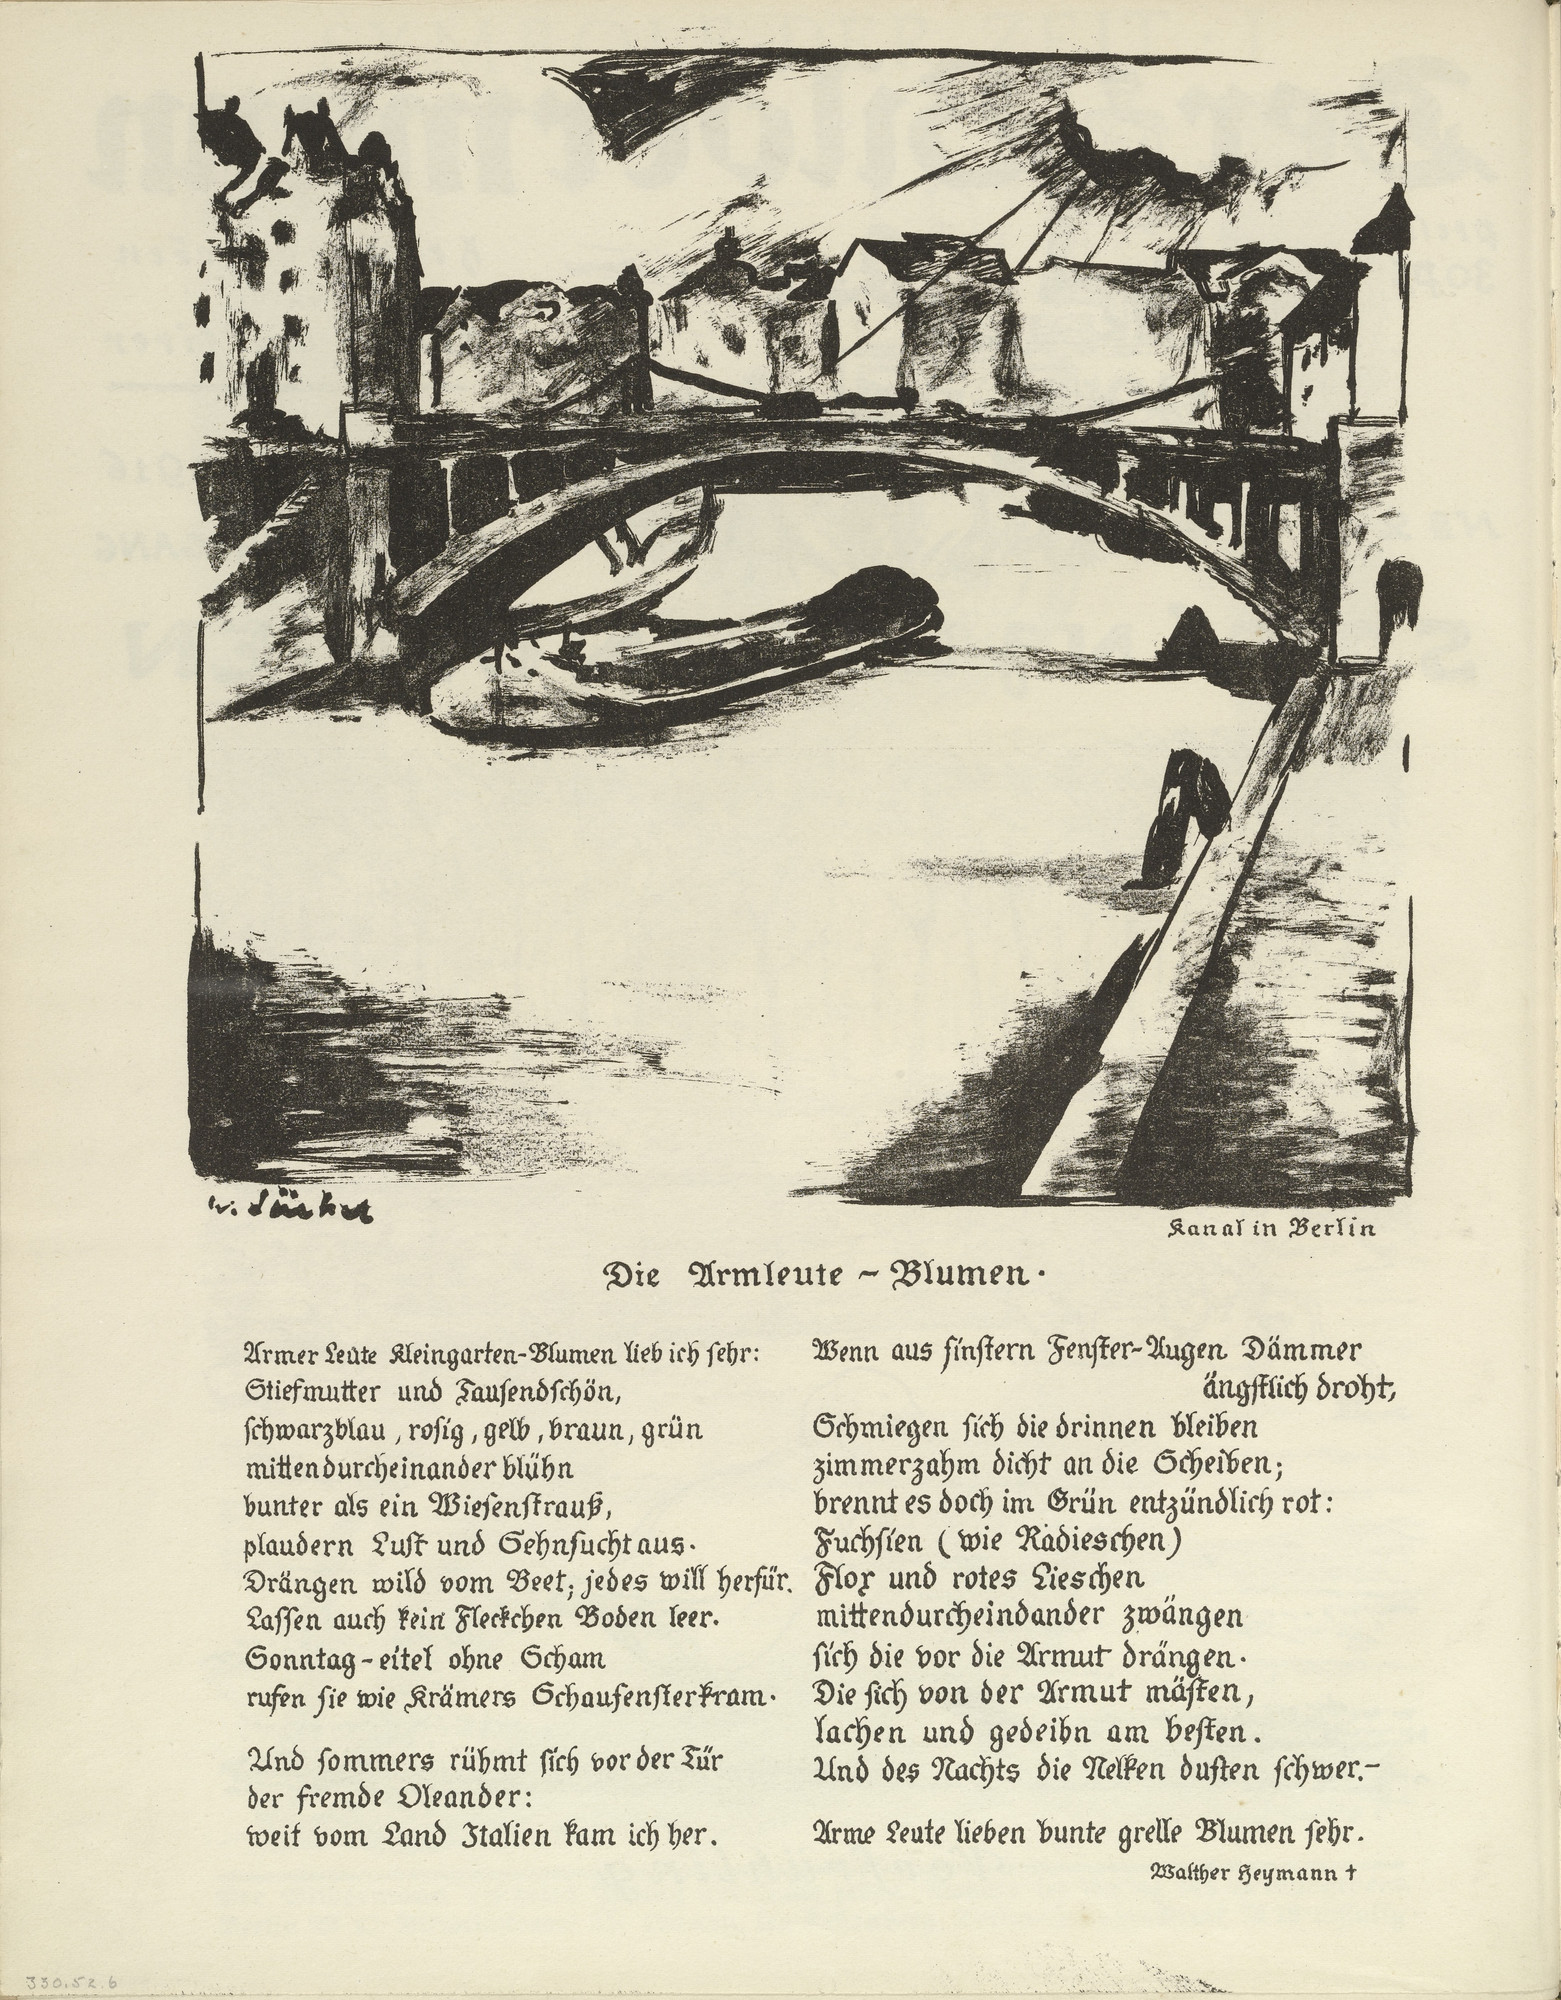 Willy Jaeckel. Canal in Berlin (Kanal in Berlin) (plate, folio 4 verso) from the periodical Der Bildermann, vol. 1, no. 2 (April 1916). 1916